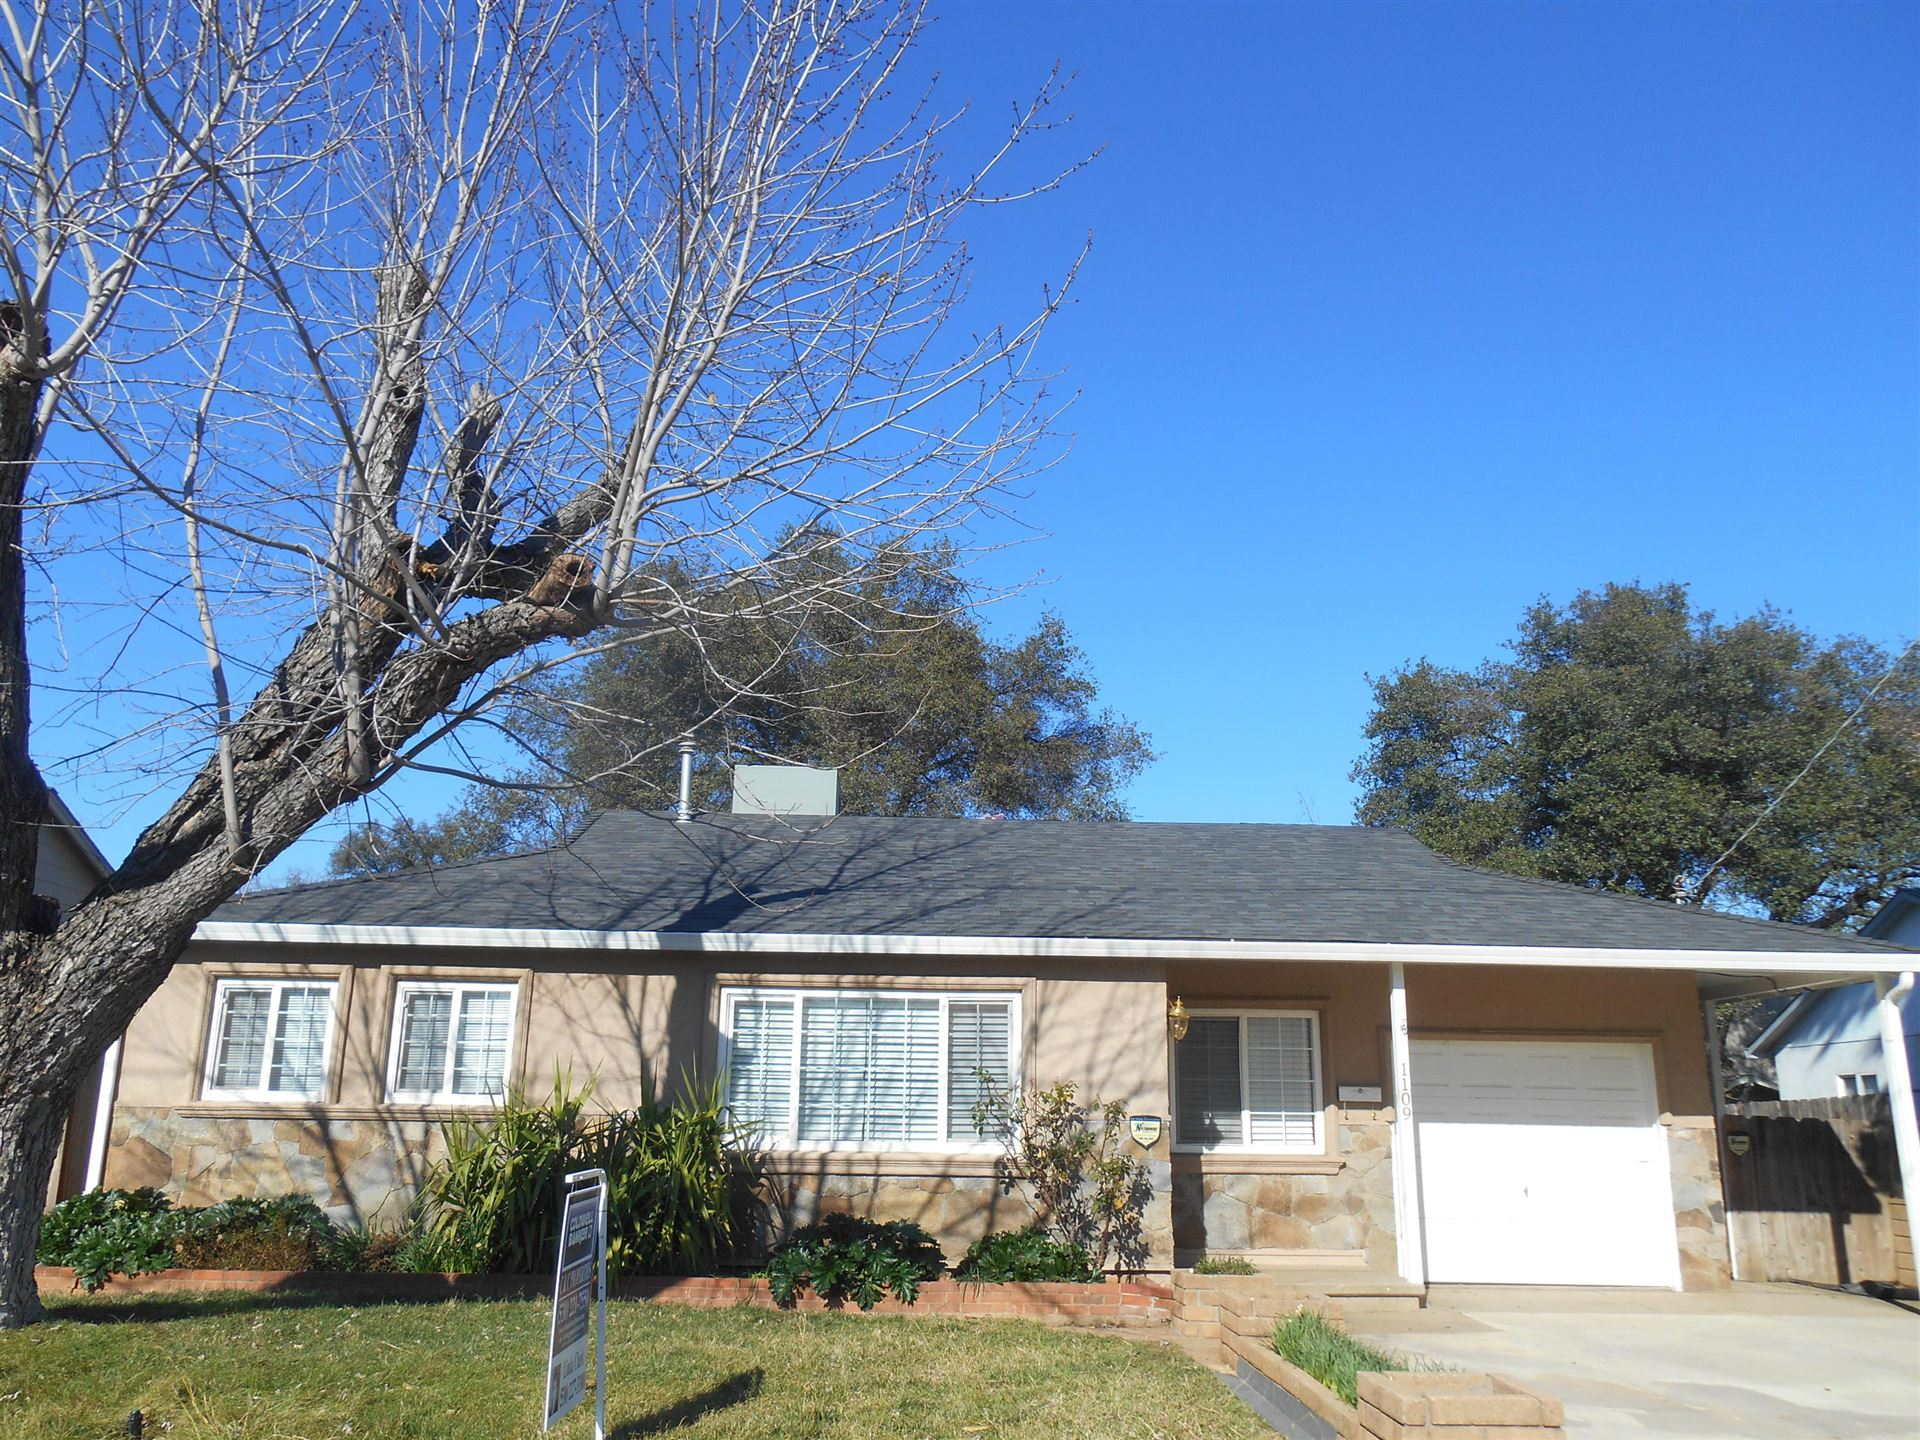 1109 5th St, Redding, CA 96002 - MLS#: 19-6210